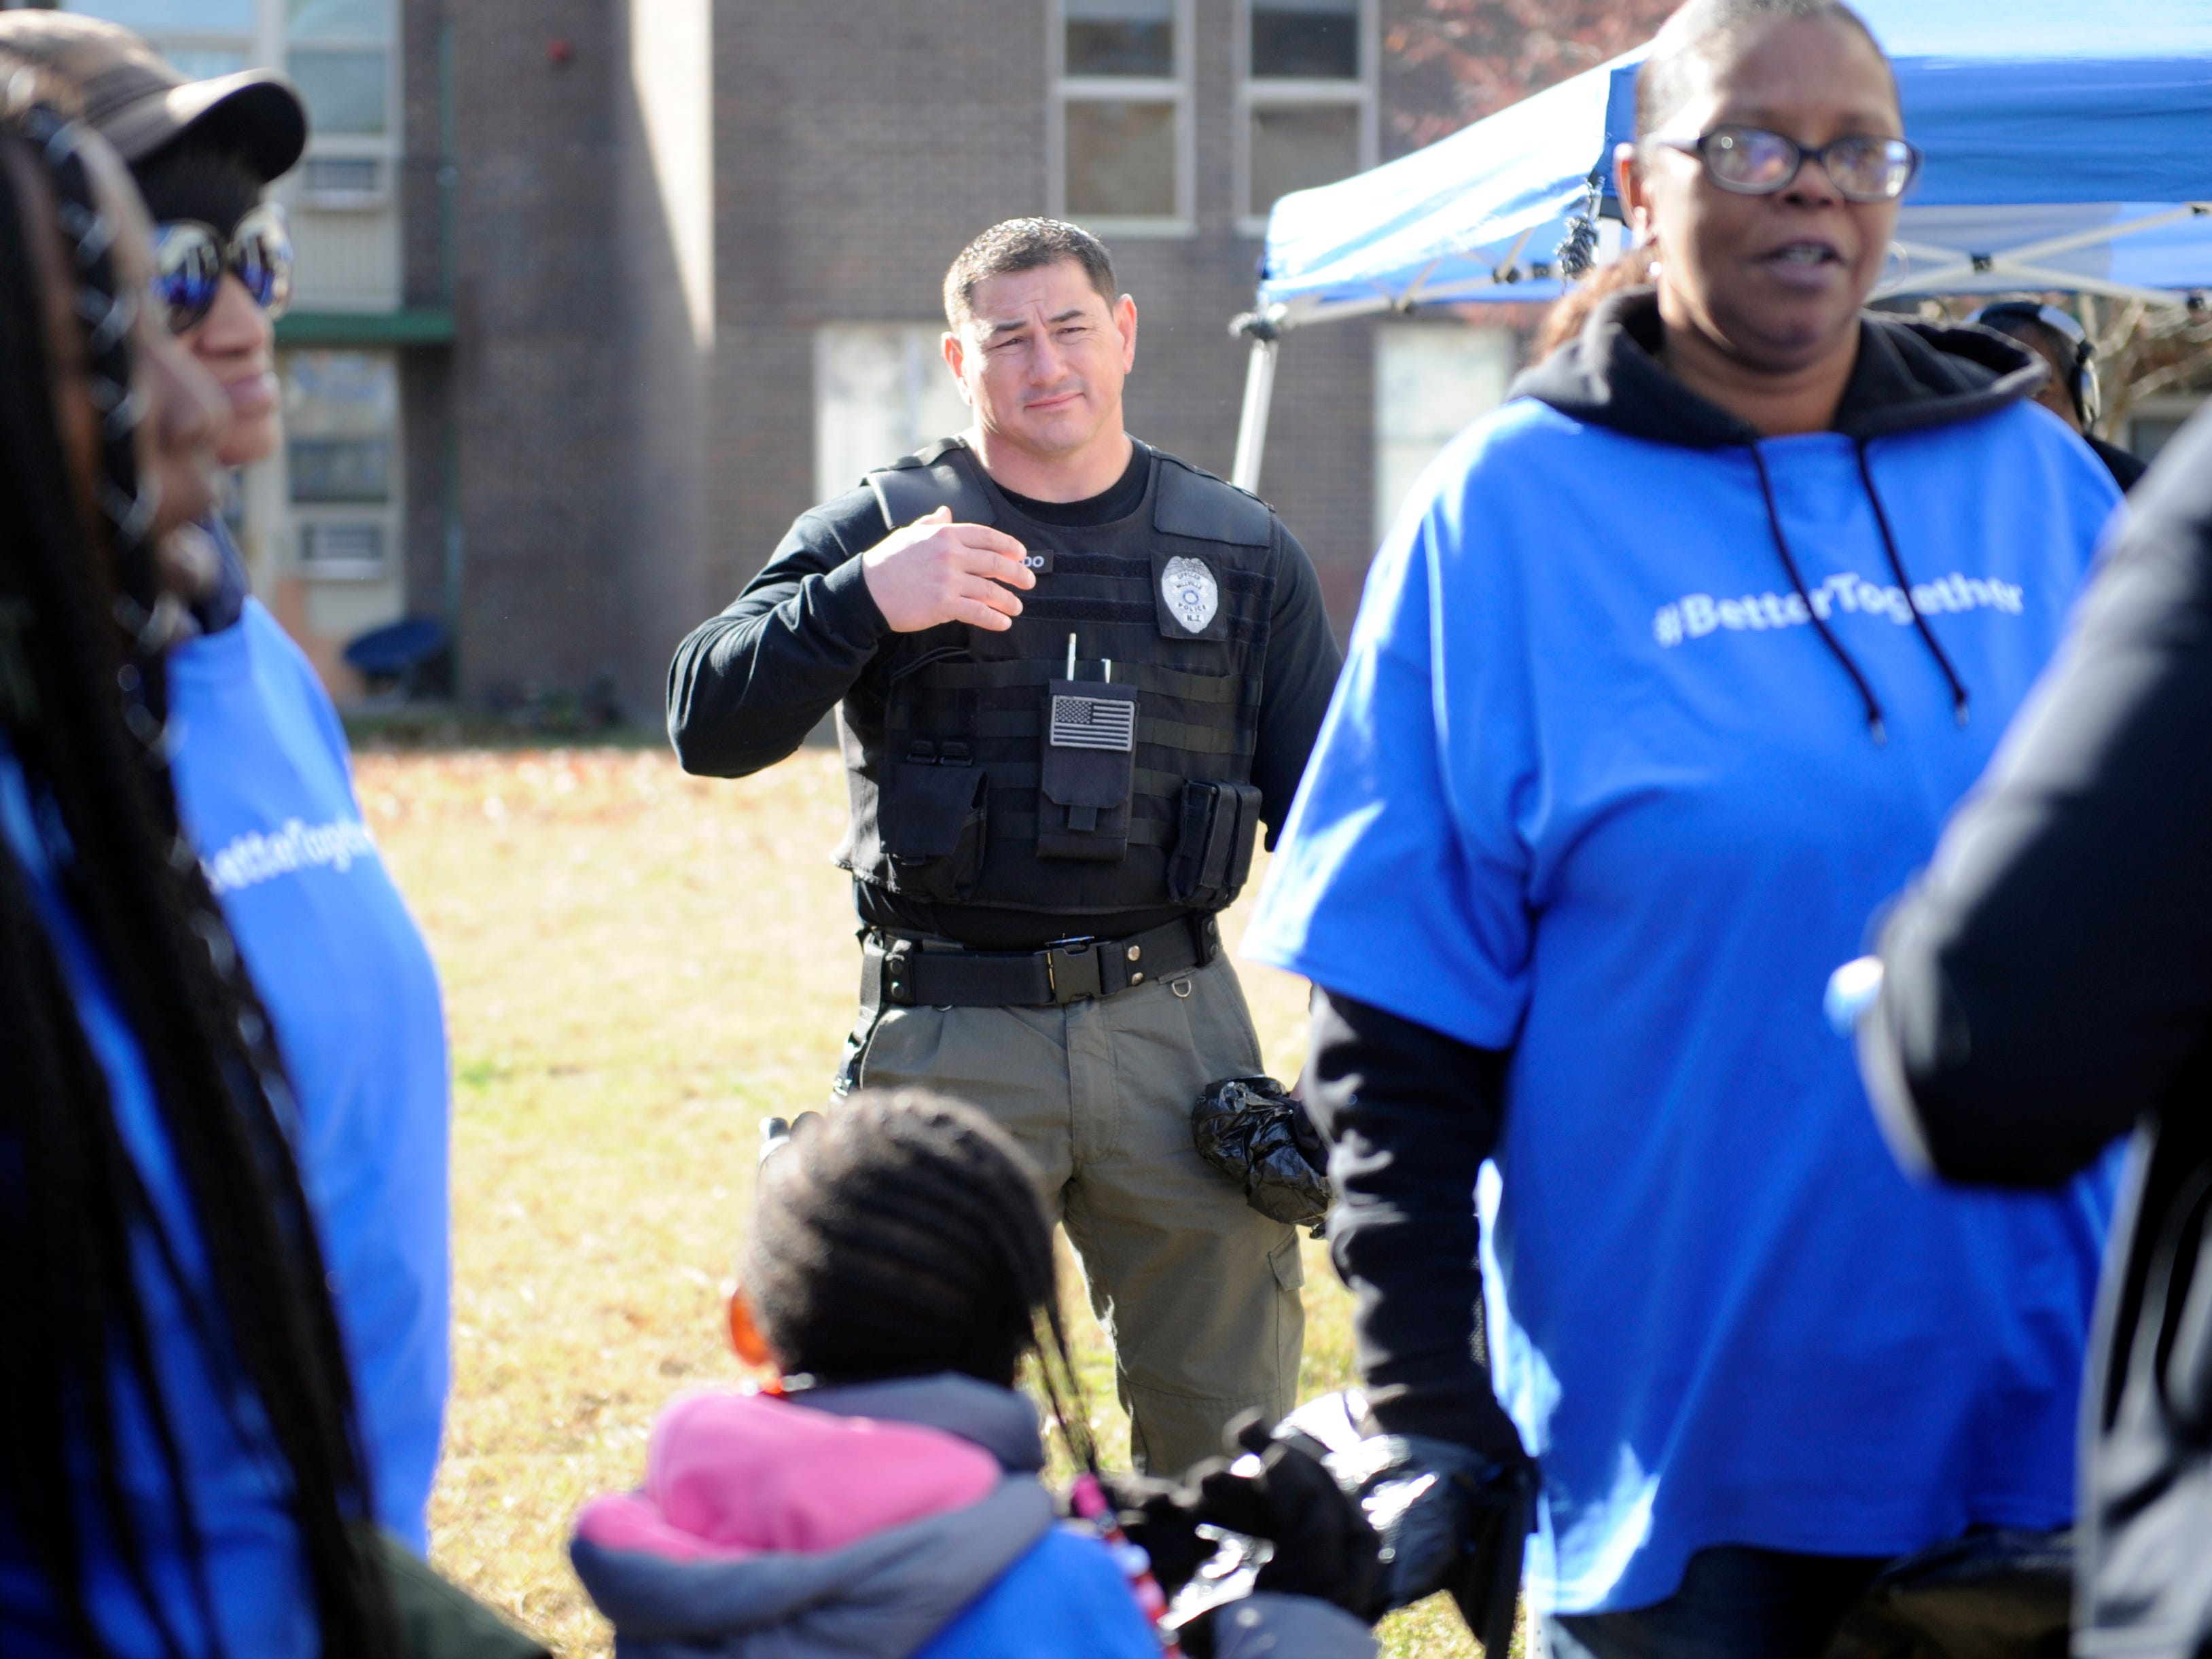 Millville residents, city officials and members of the police department create a stronger sense of community during a special property clean up event at Oakview Apartments on Thursday, November 8, 2018.